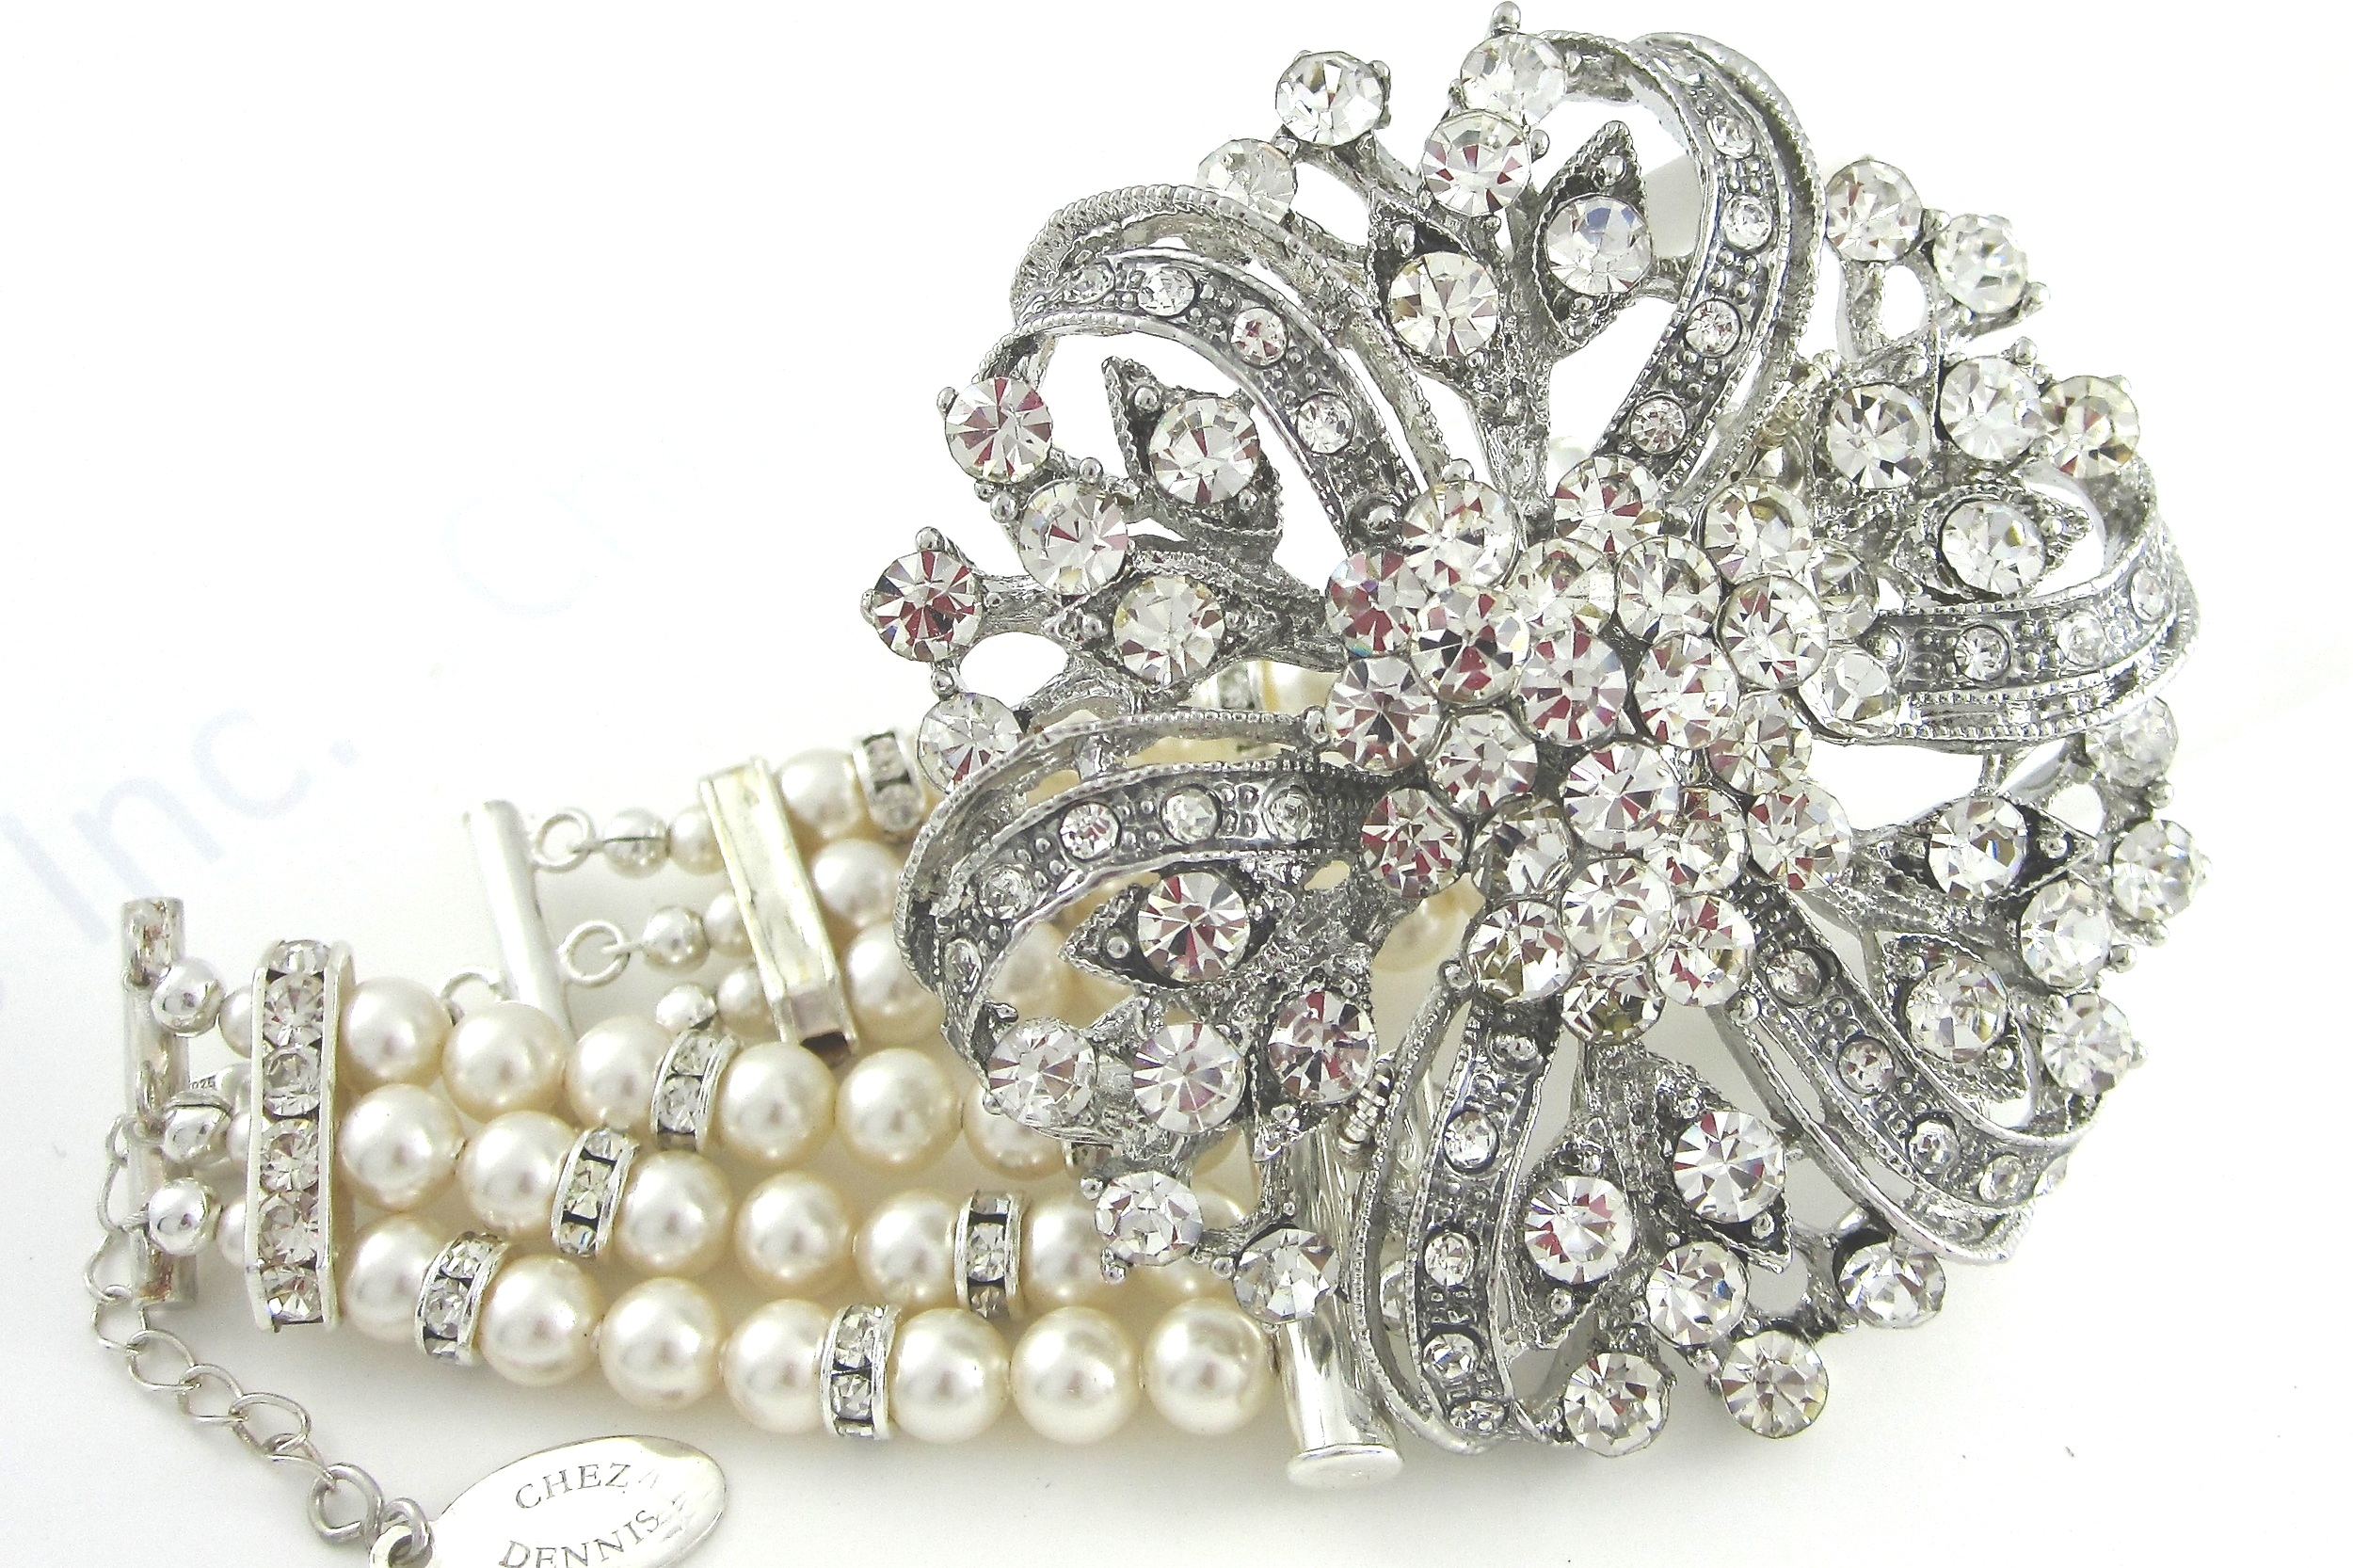 Vintage centerpiece pearl and silver bracelet